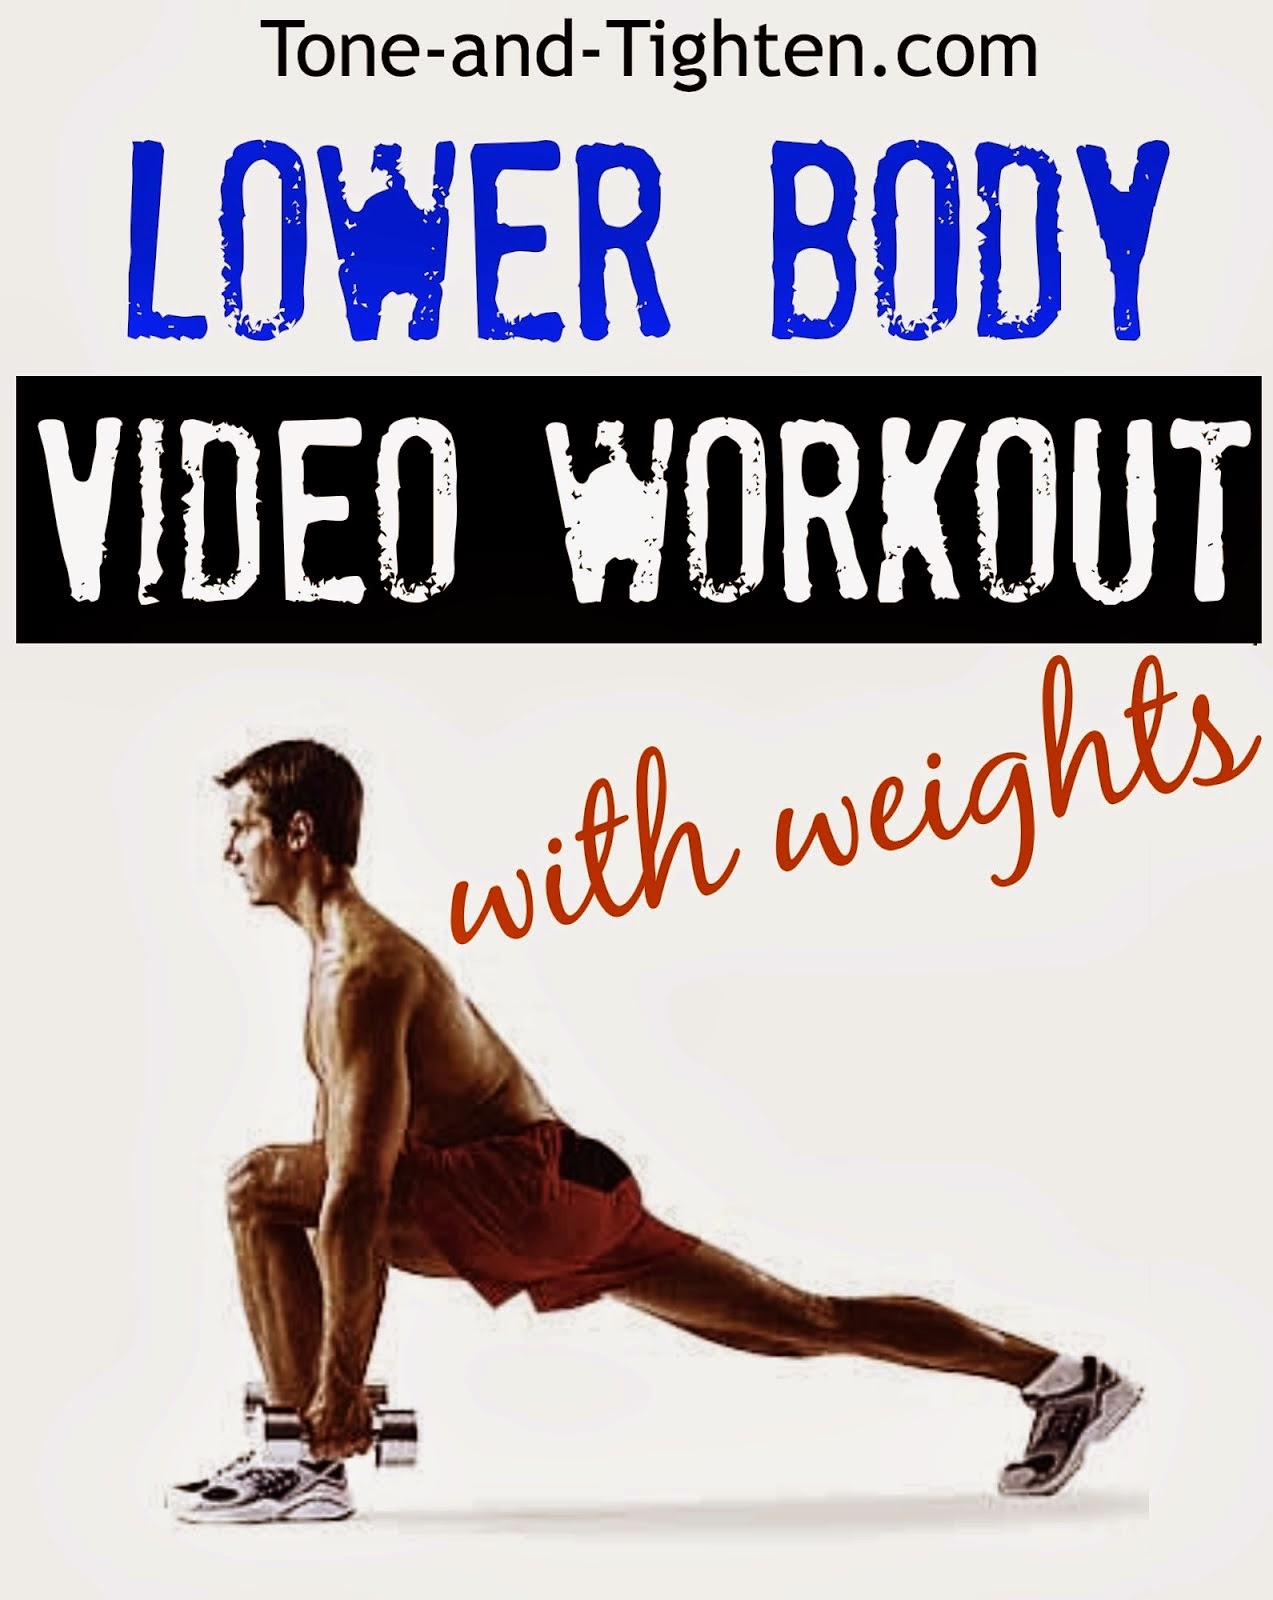 https://tone-and-tighten.com/2014/02/lower-body-video-workout-with-weights-strength-routine-at-its-finest.html